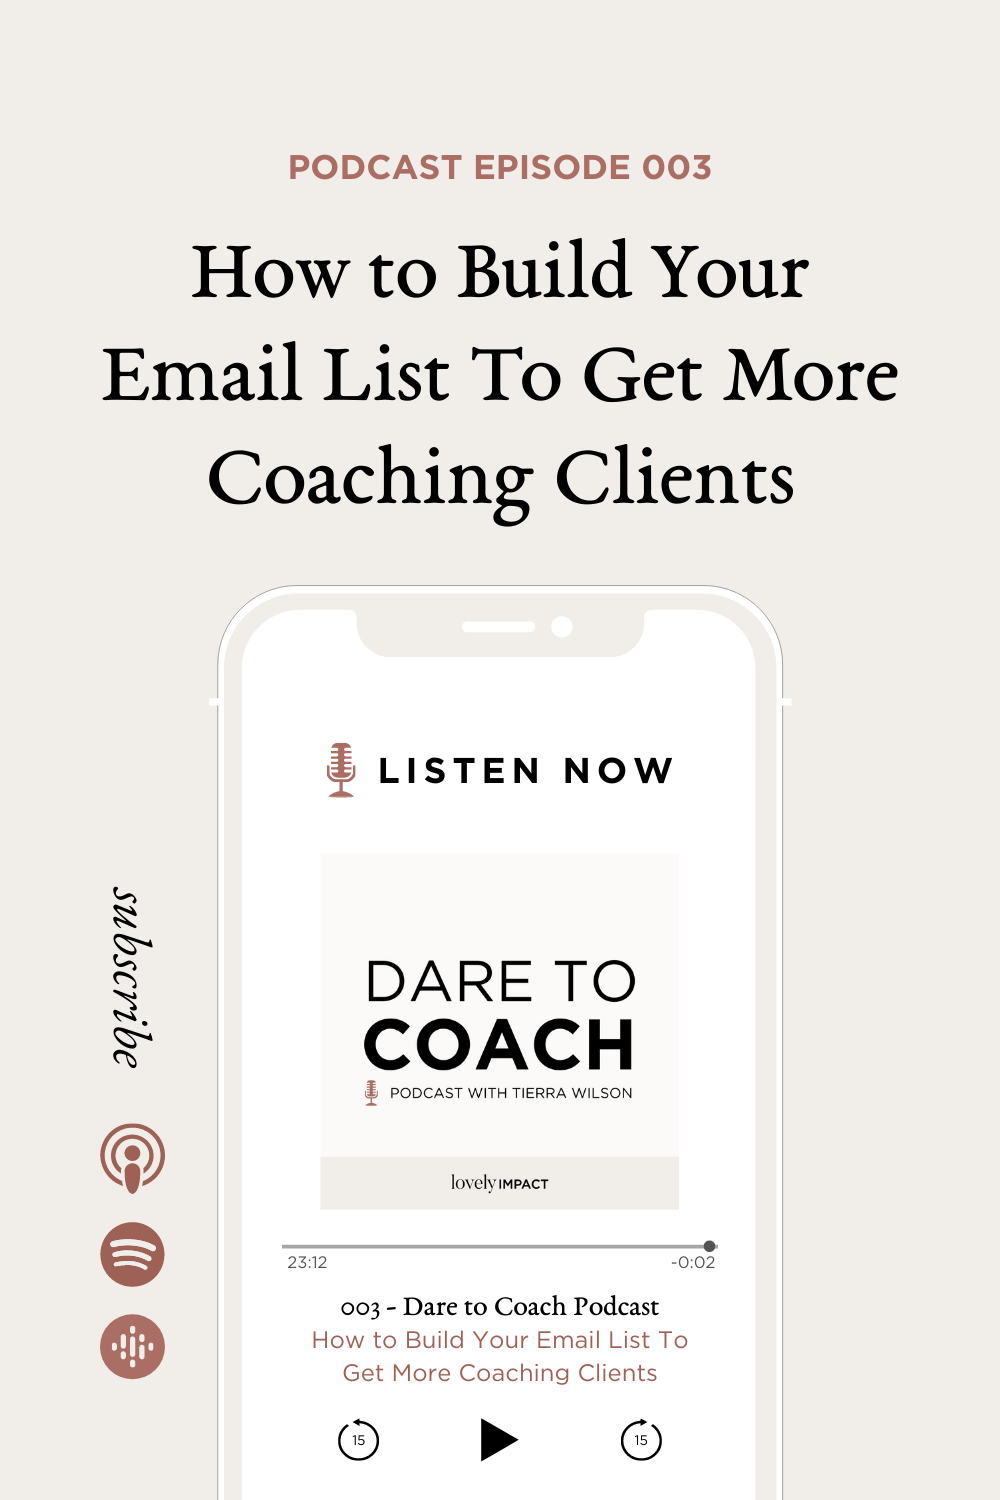 Episode 003: How to Build Your Email List To Get More Coaching Clients